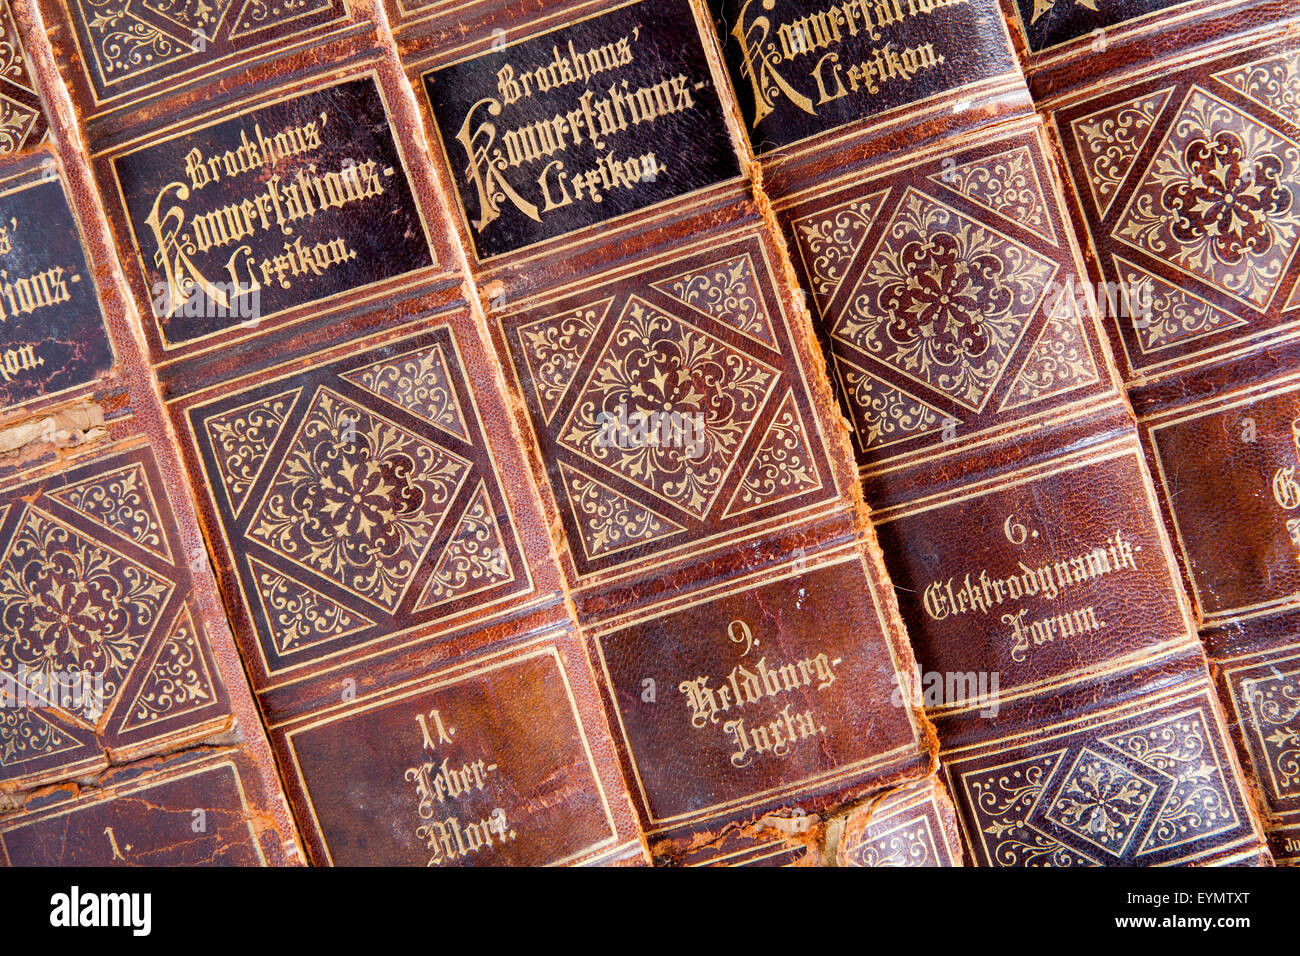 German encyclopedia Brockhaus, 19th Century, - Stock Image